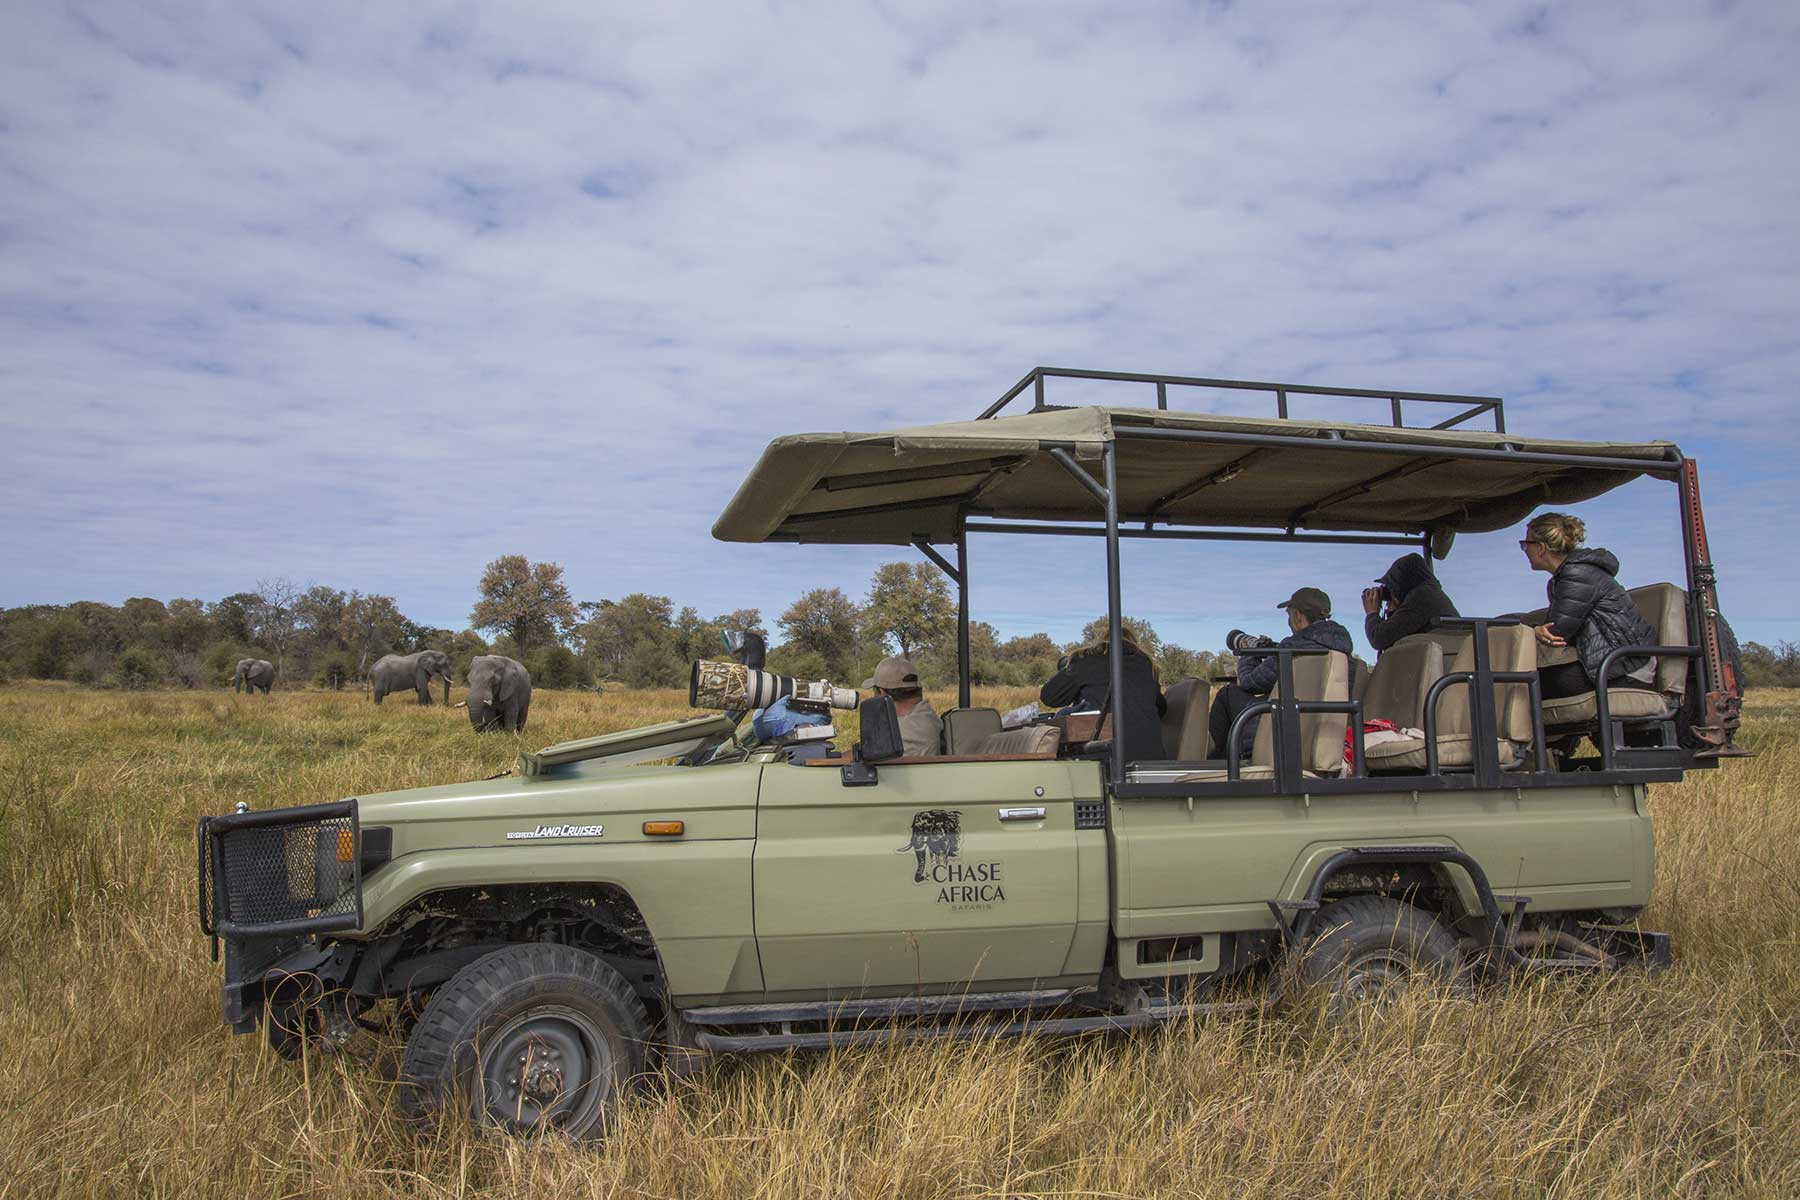 Game drive with Chase Africa Safaris